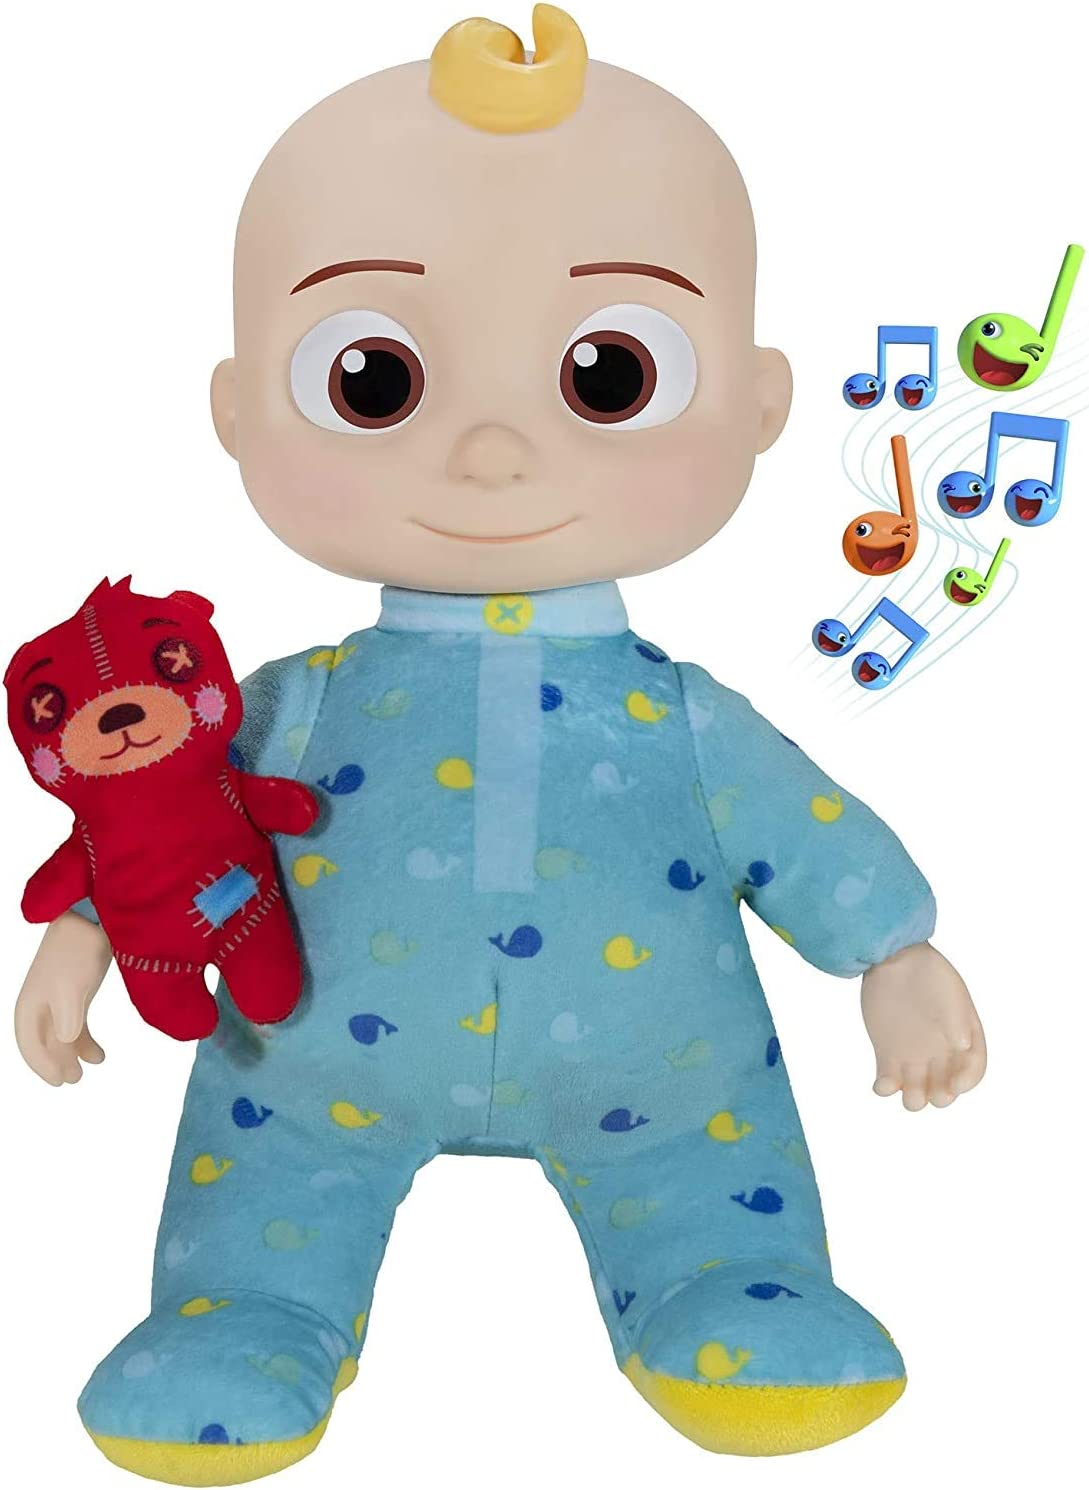 Cocomelon Musical Bedtime JJ Doll - Full size view